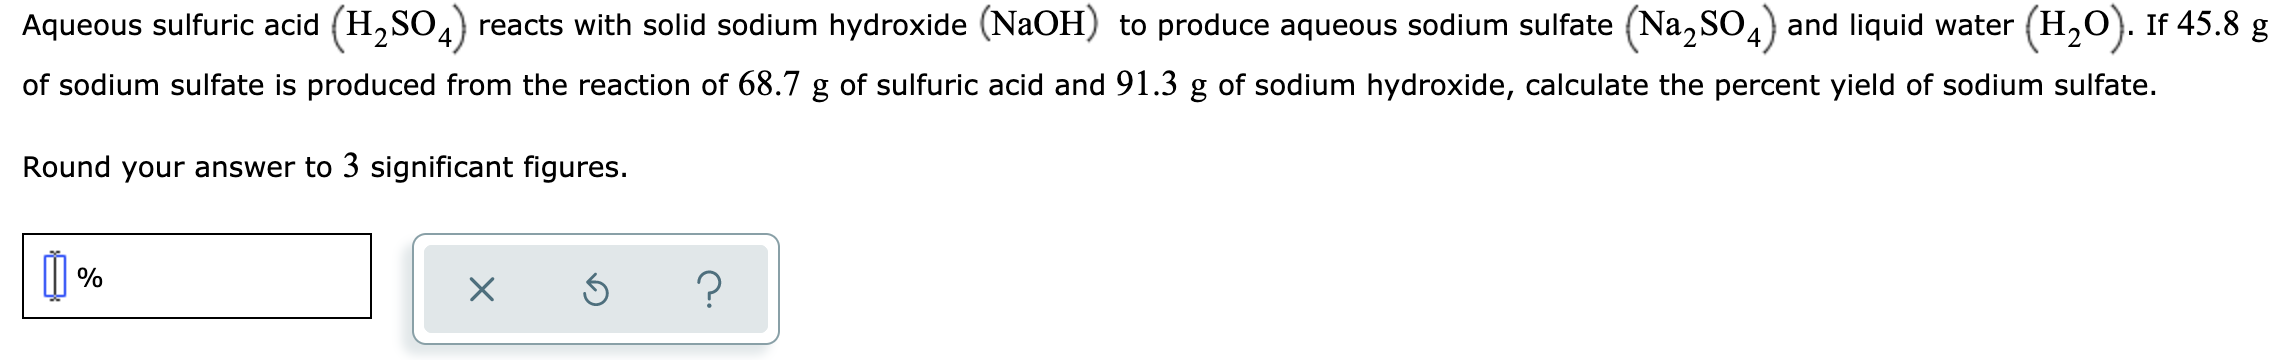 Aqueous sulfuric acid (H,SO,) reacts with solid sodium hydroxide (NaOH) to produce aqueous sodium sulfate (Na, SO,) and liquid water (H,0). If 45.8 g of sodium sulfate is produced from the reaction of 68.7 g of sulfuric acid and 91.3 g of sodium hydroxide, calculate the percent yield of sodium sulfate. Round your answer to 3 significant figures.